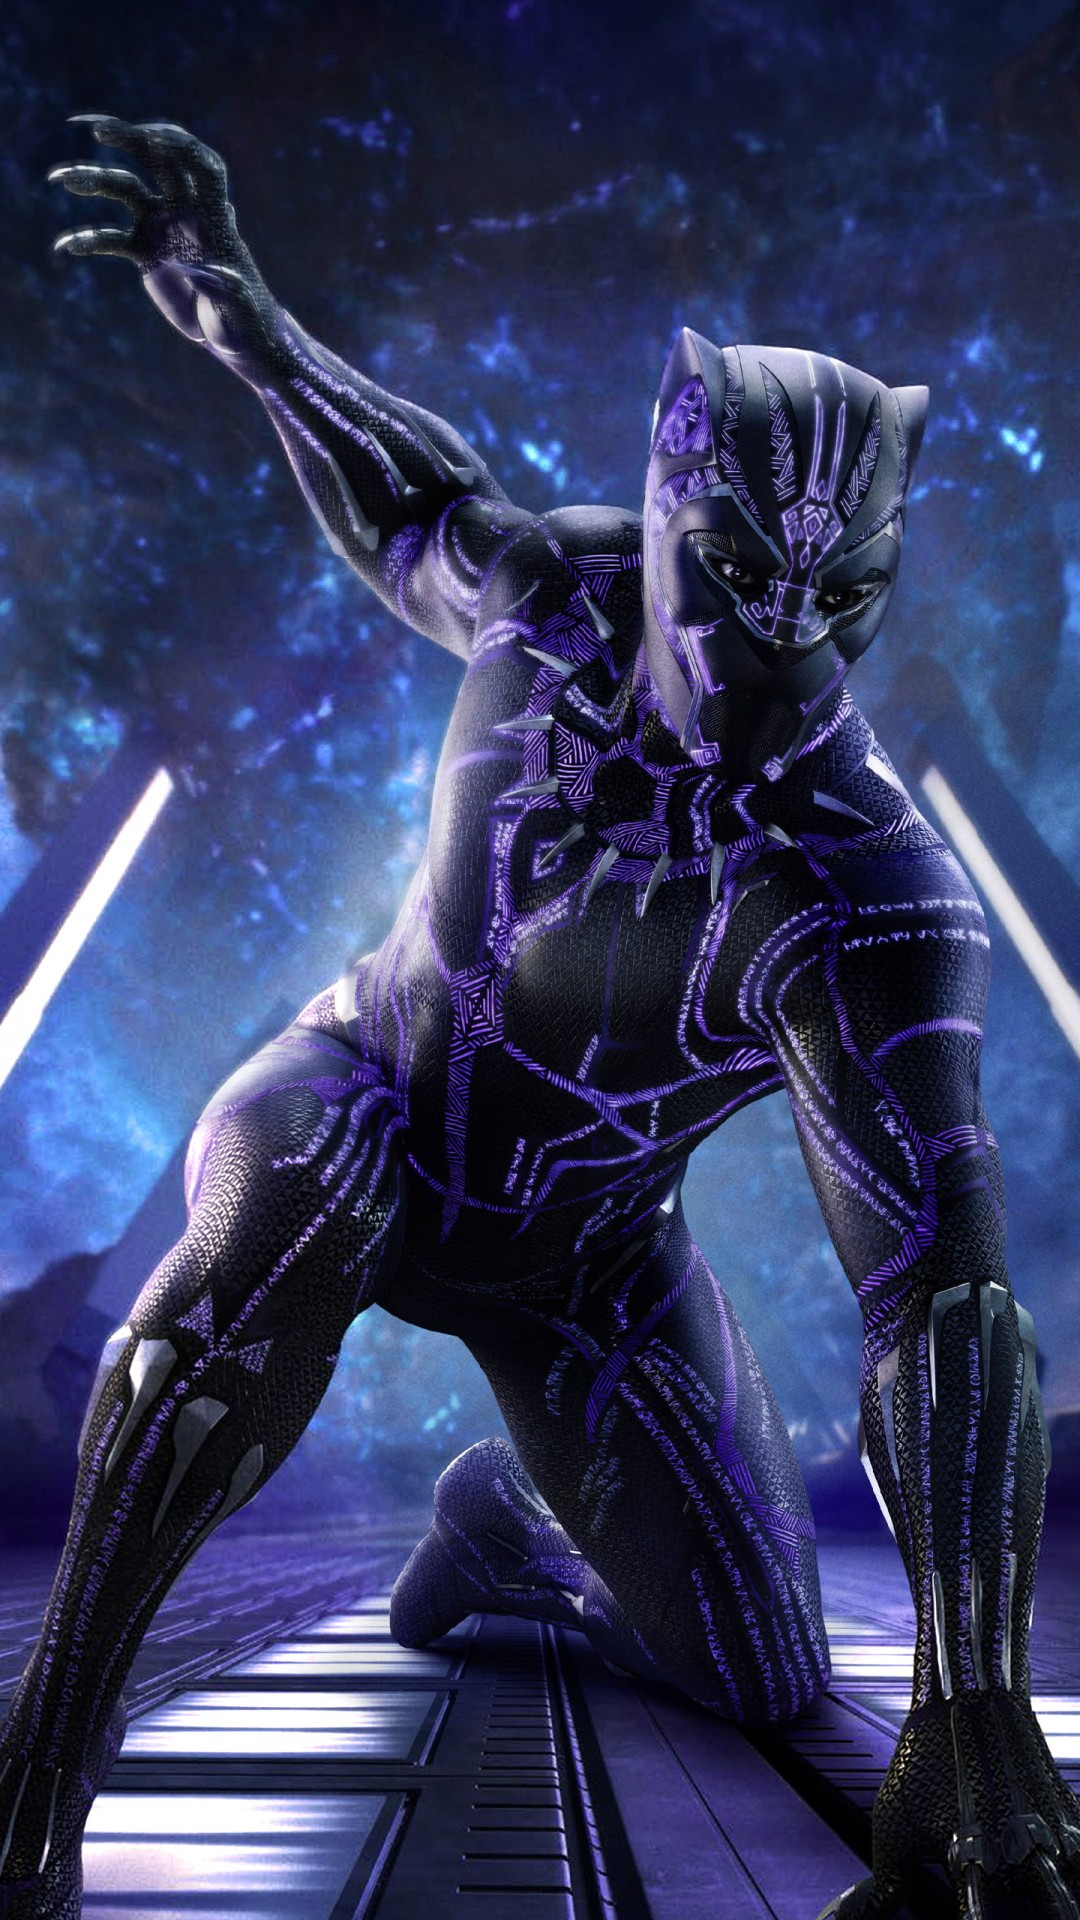 X Ray Wallpaper Iphone 7 Black Panther Empire Magazine Cover Wallpapers Hd